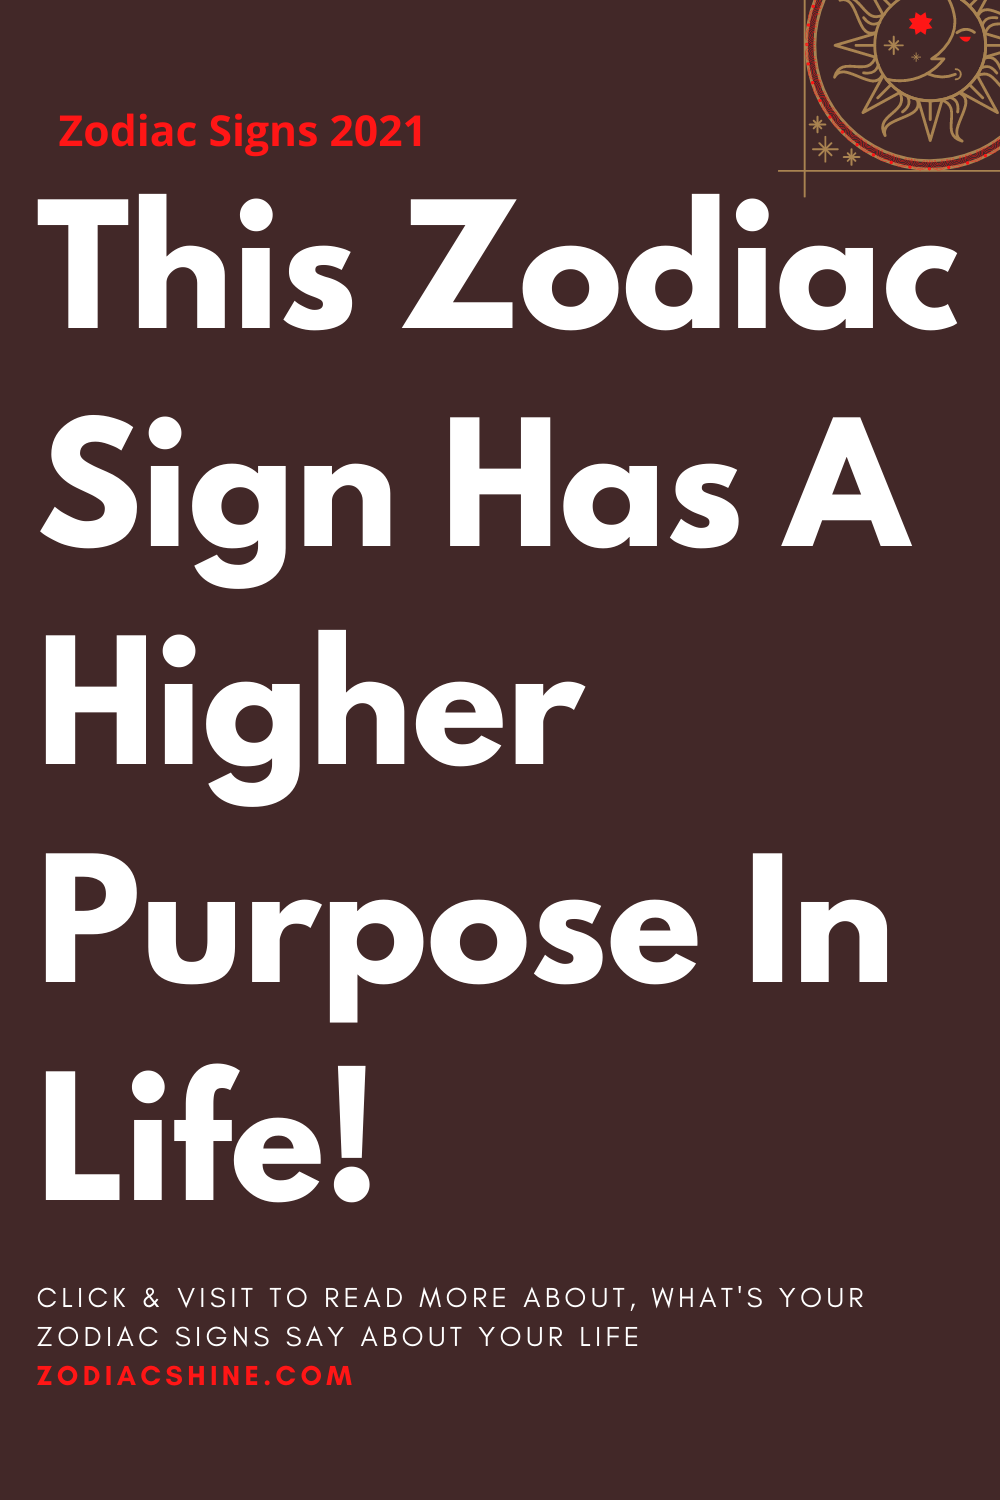 This Zodiac Sign Has A Higher Purpose In Life!